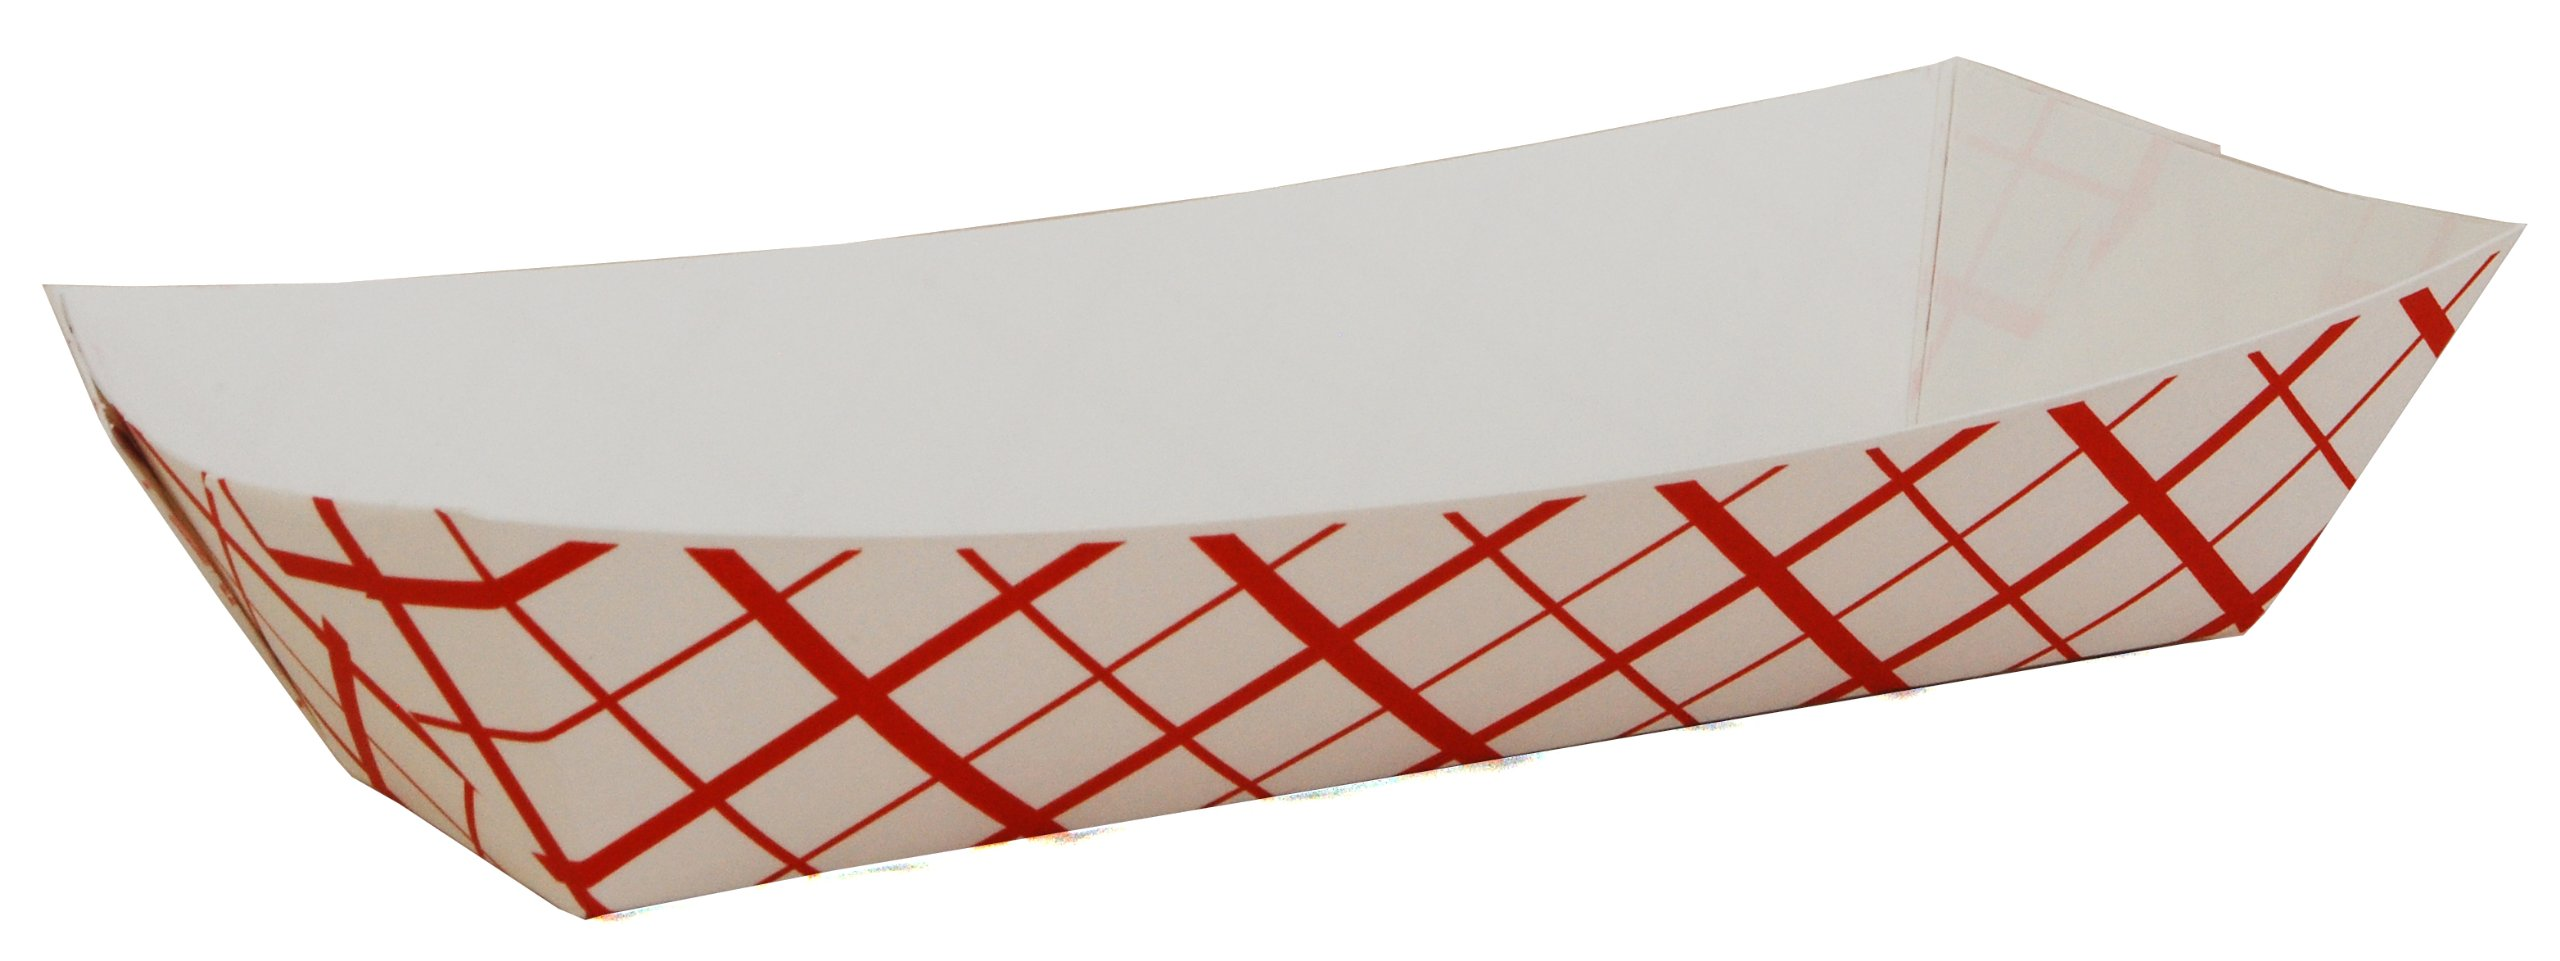 Southern Champion Tray 07091 Paperboard Red Check Hot Dog Tray, 7'' Length x 2-3/4'' Width x 1-1/2'' Height (Case of 1000)